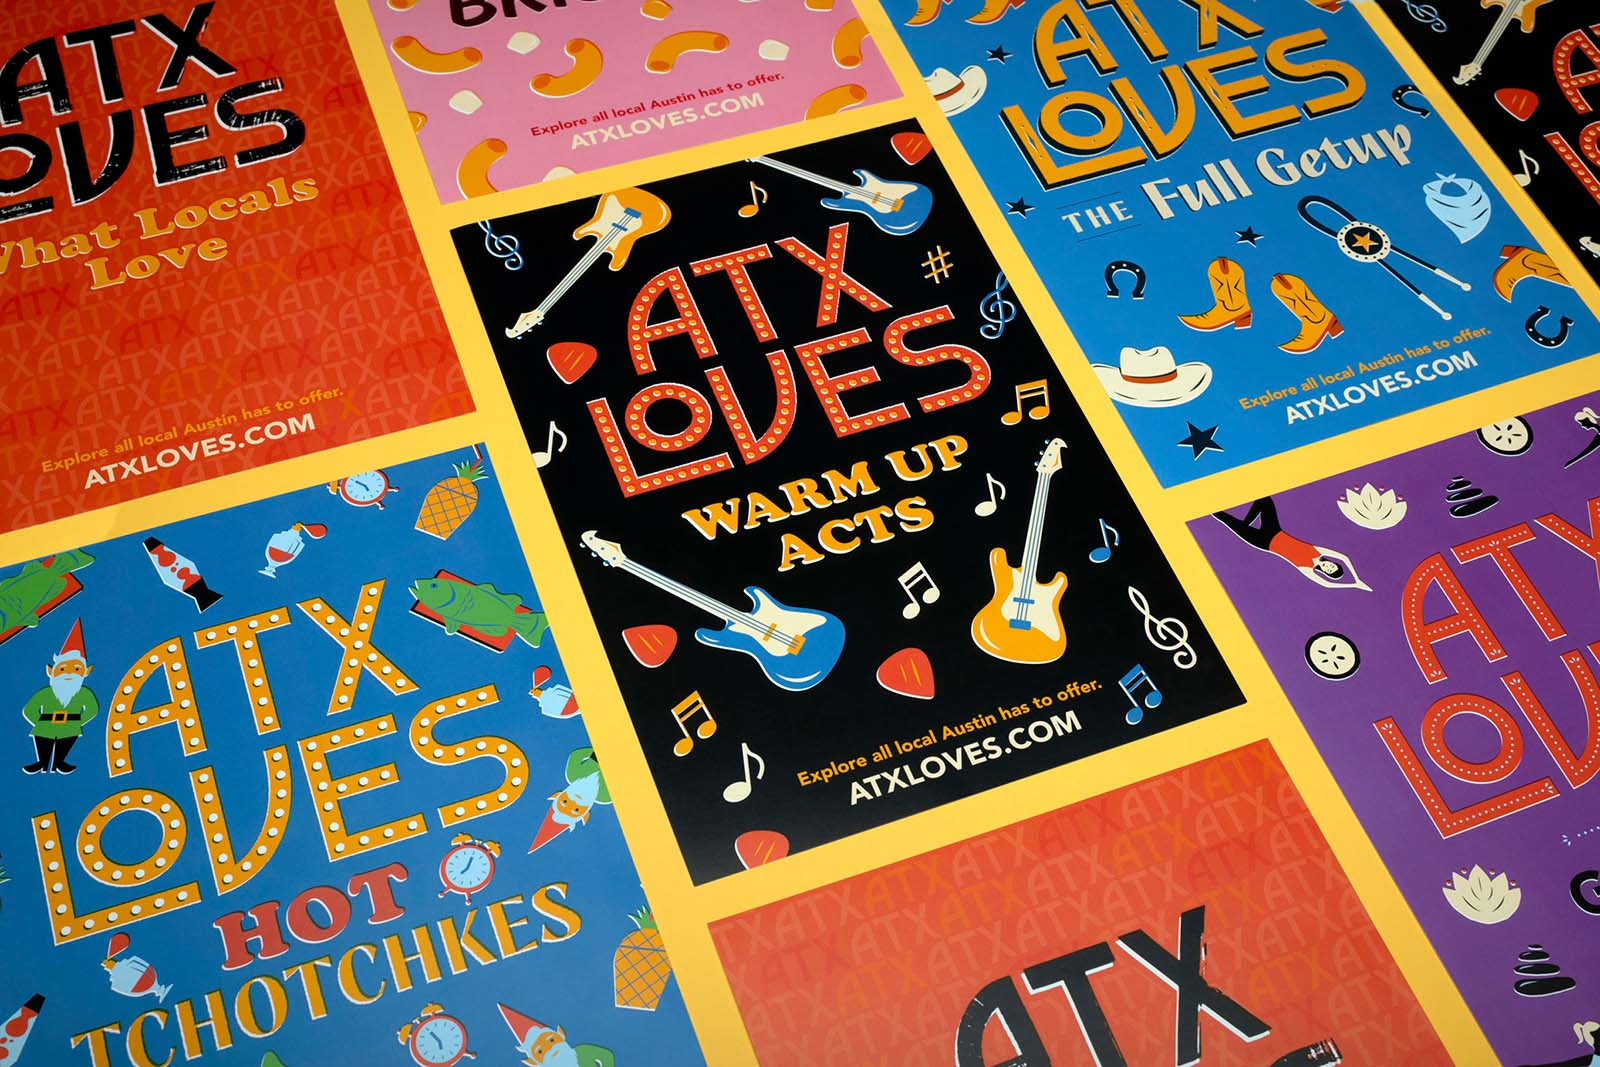 A series of illustrated ATXLoves postcards.